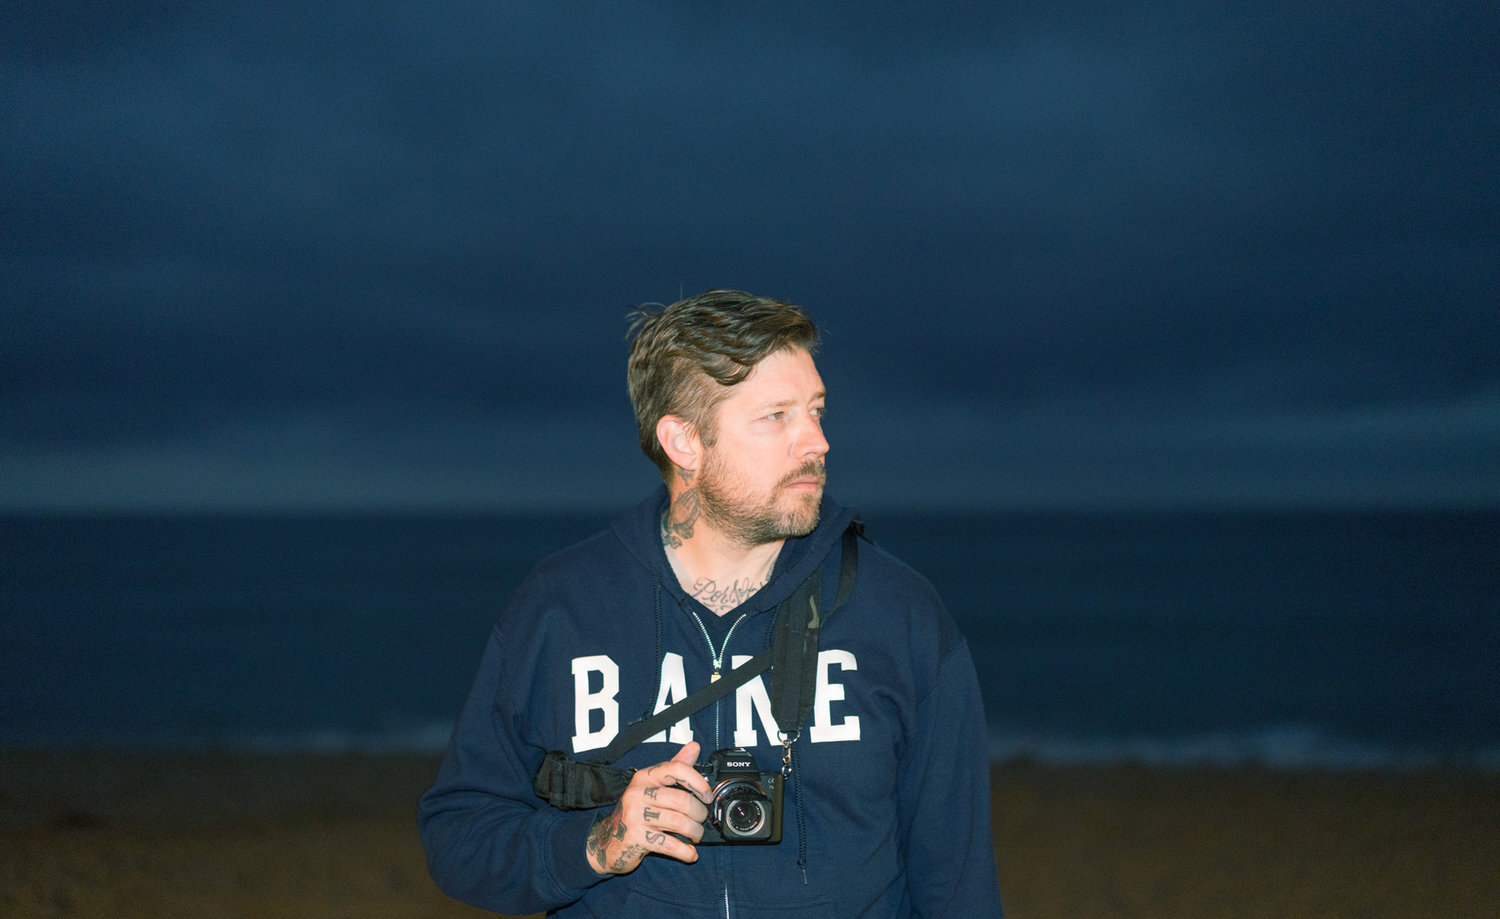 Ithyle, Film Director/ Director of Photography/ Stop Motion Director